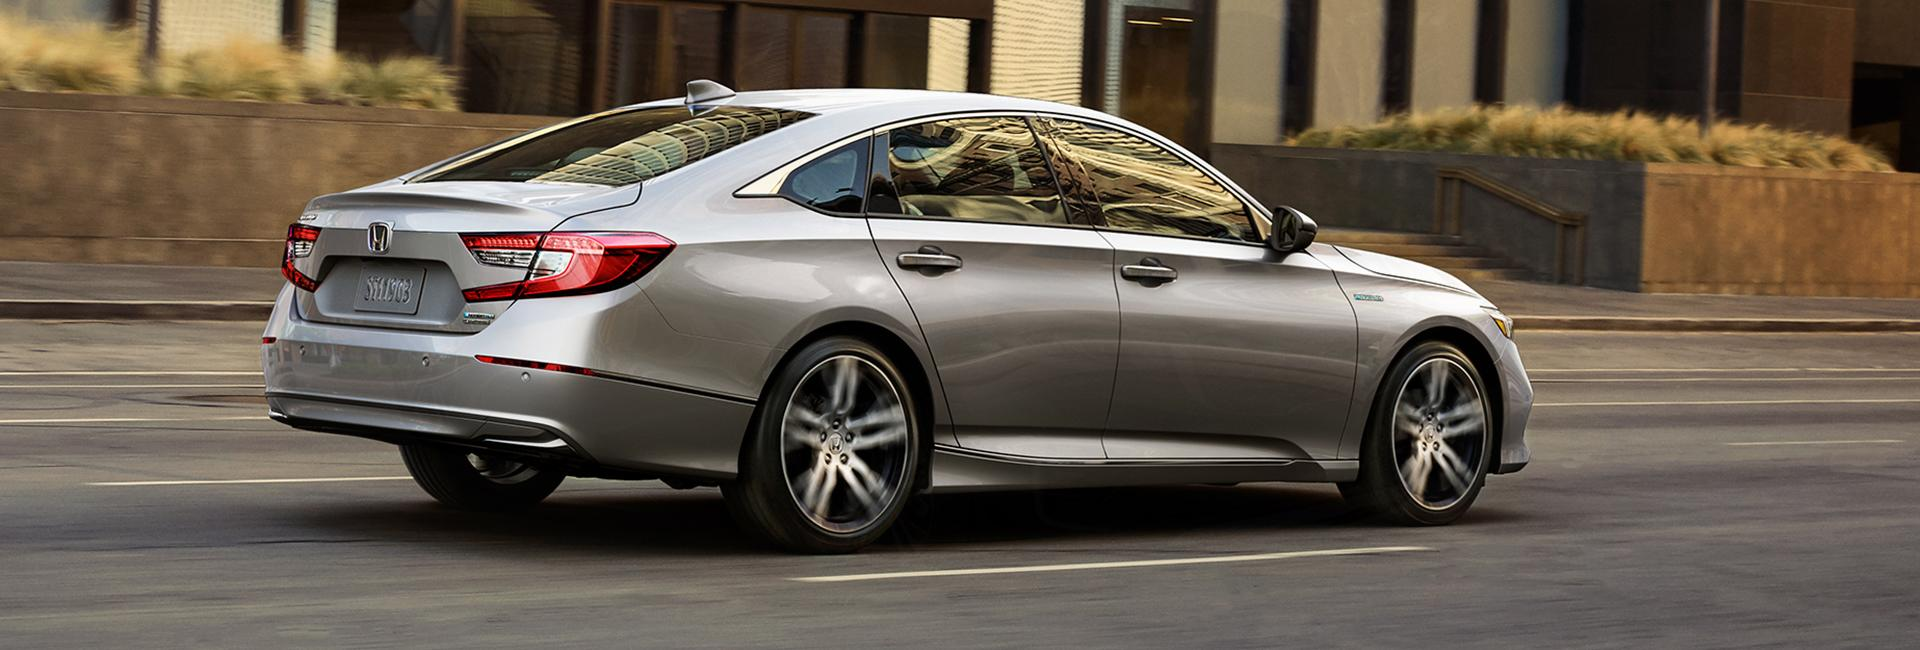 Side angled profile of a silver Honda Accord in motion